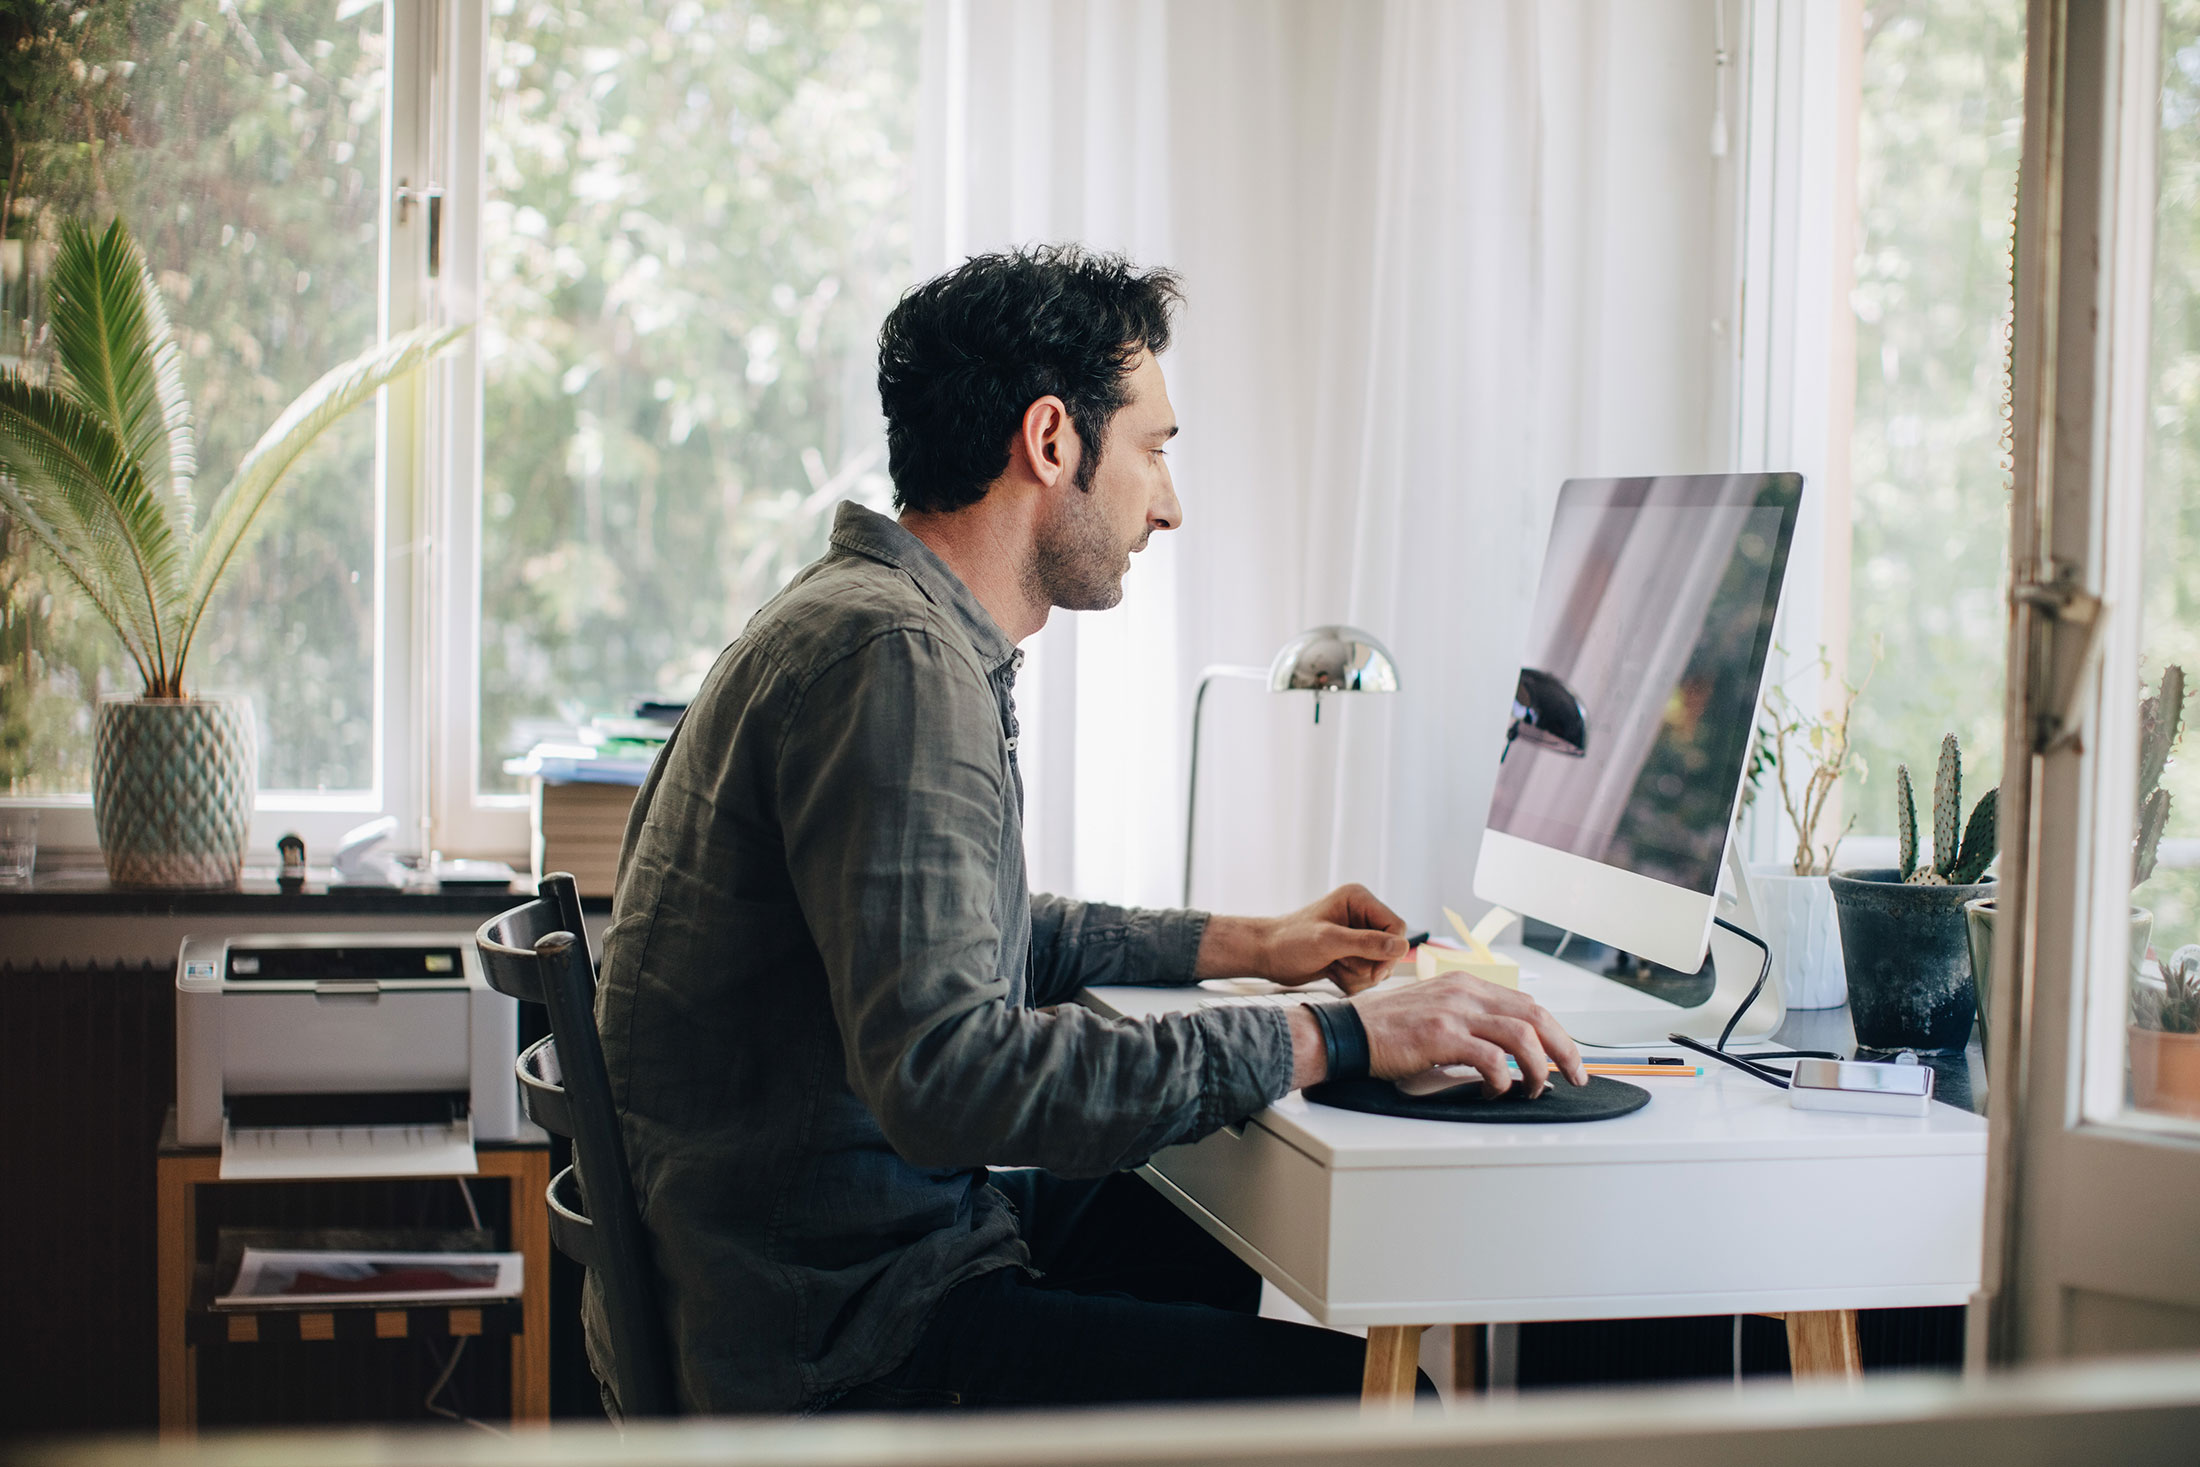 Yes, You Should Work From Home to Fight Coronavirus Spread - Bloomberg